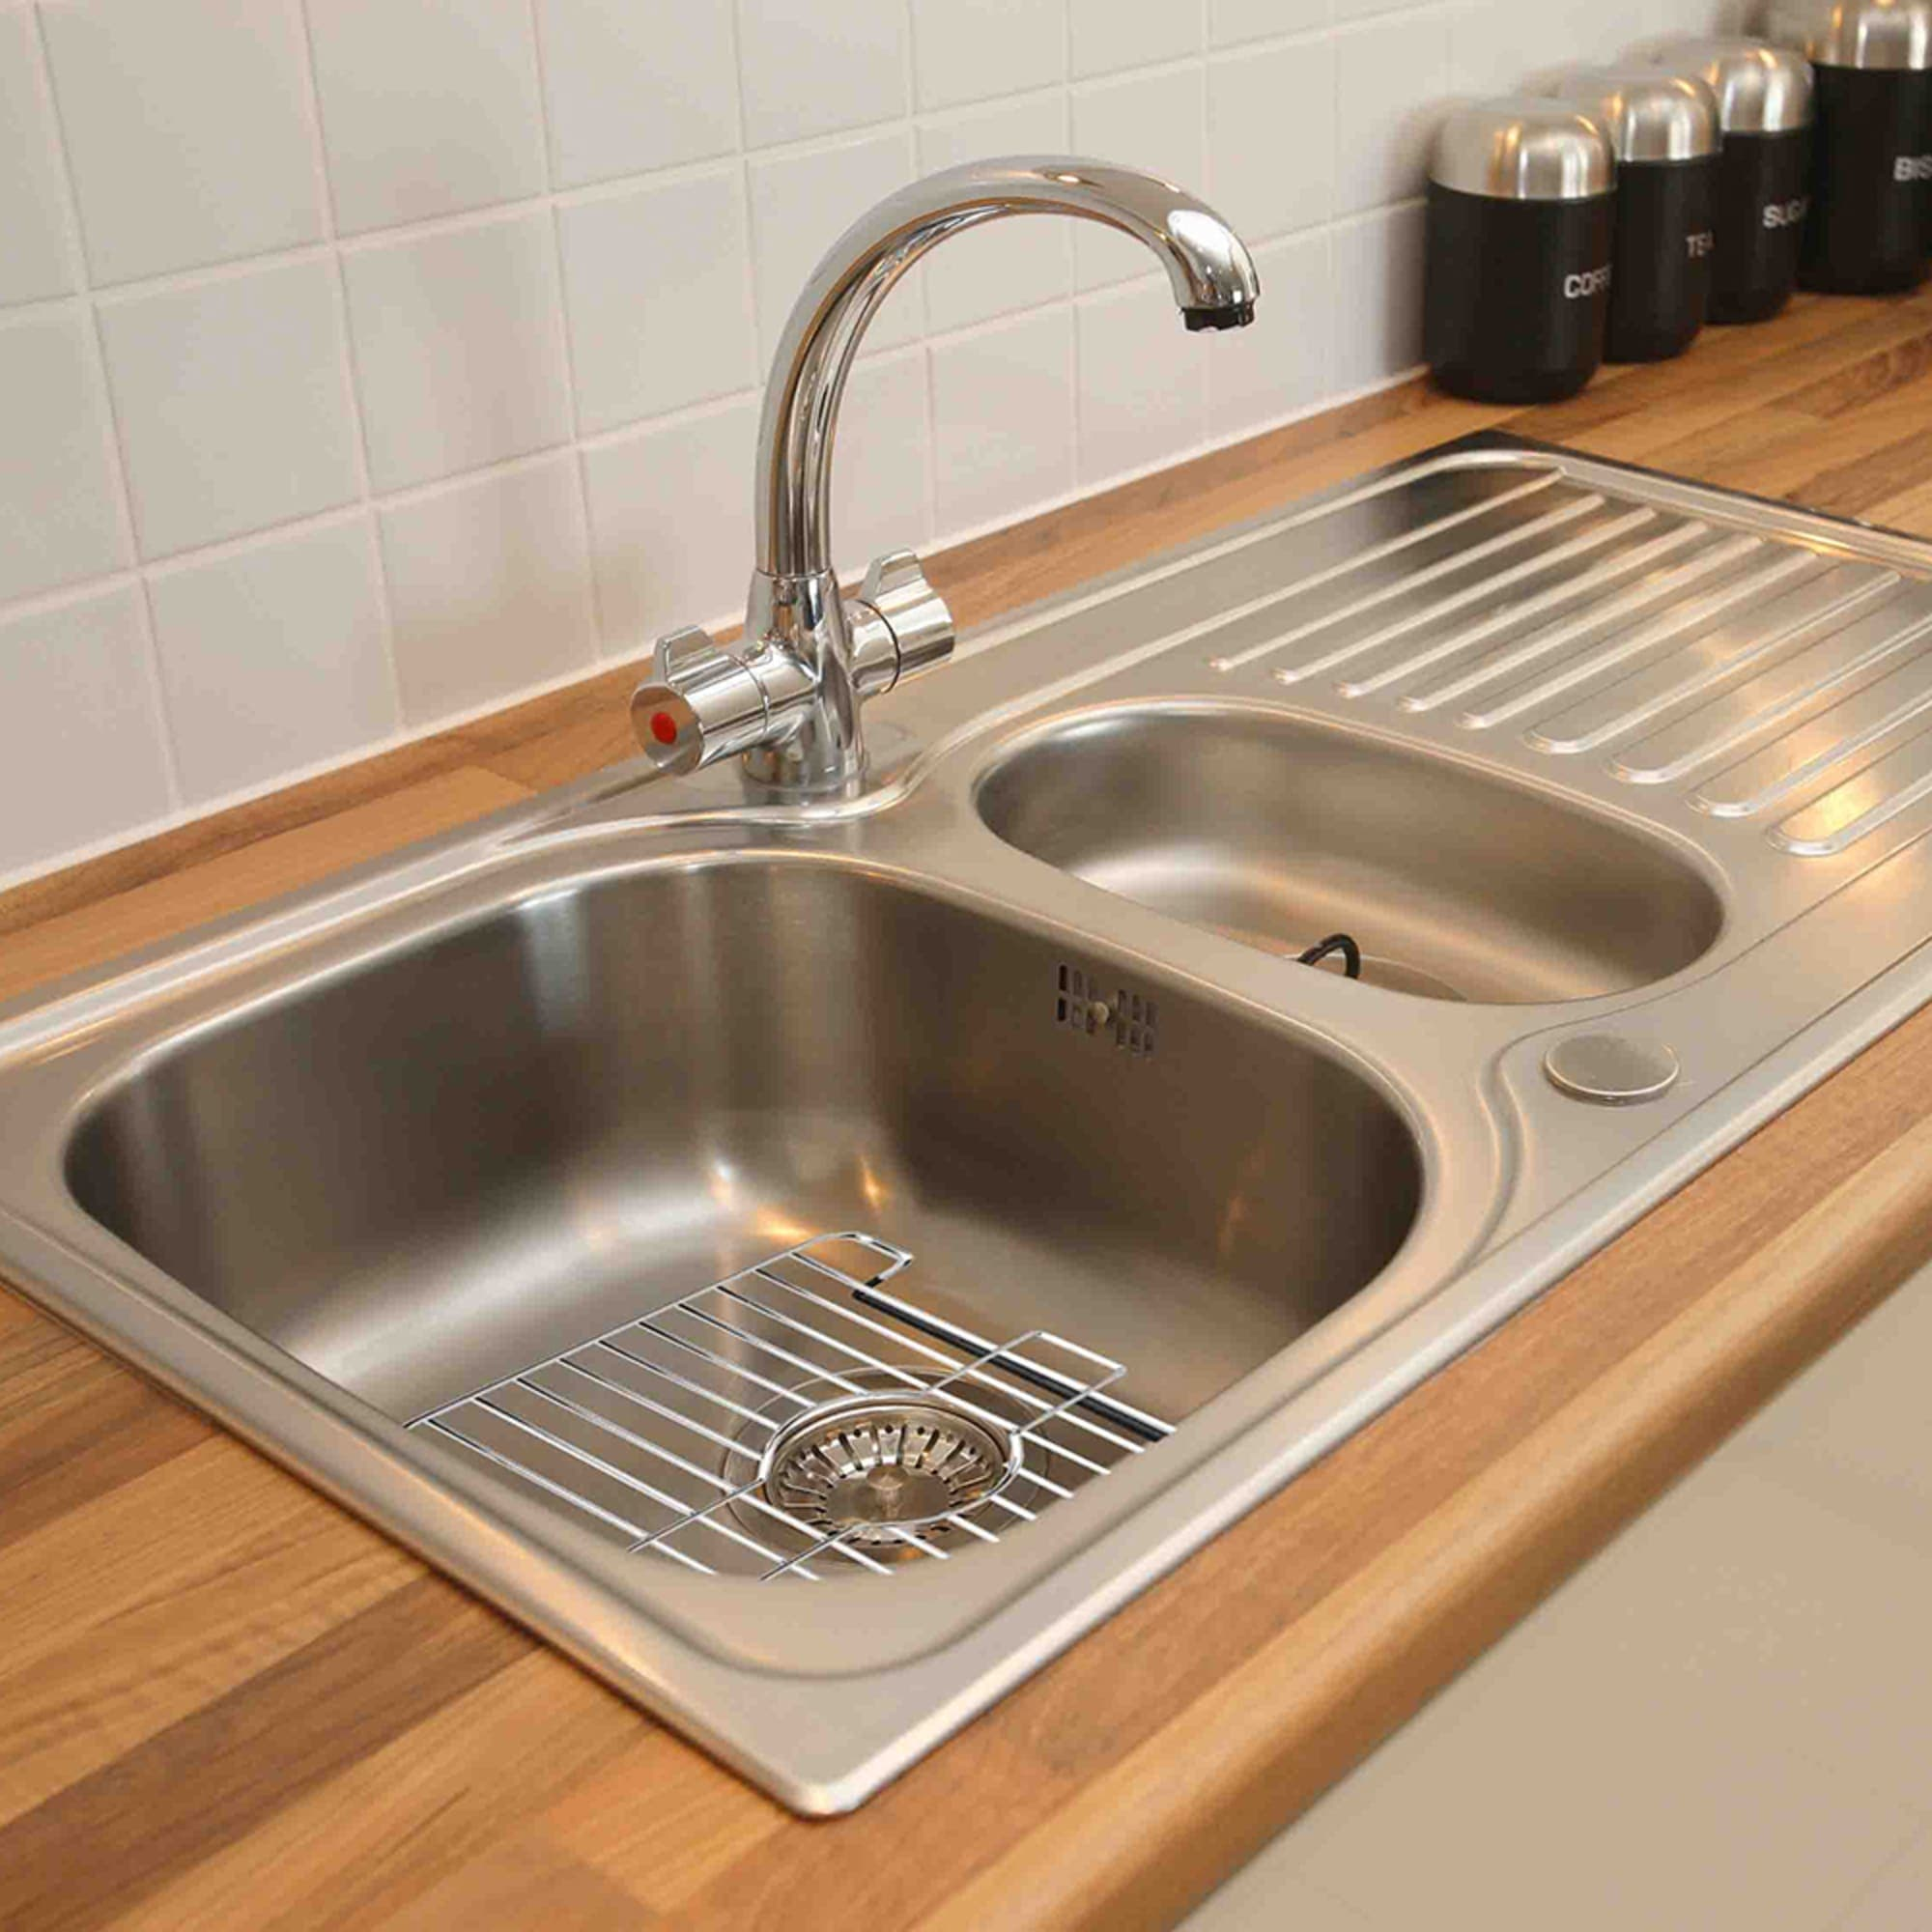 Small Rubber Coated Chrome Plated Steel Sink Protector